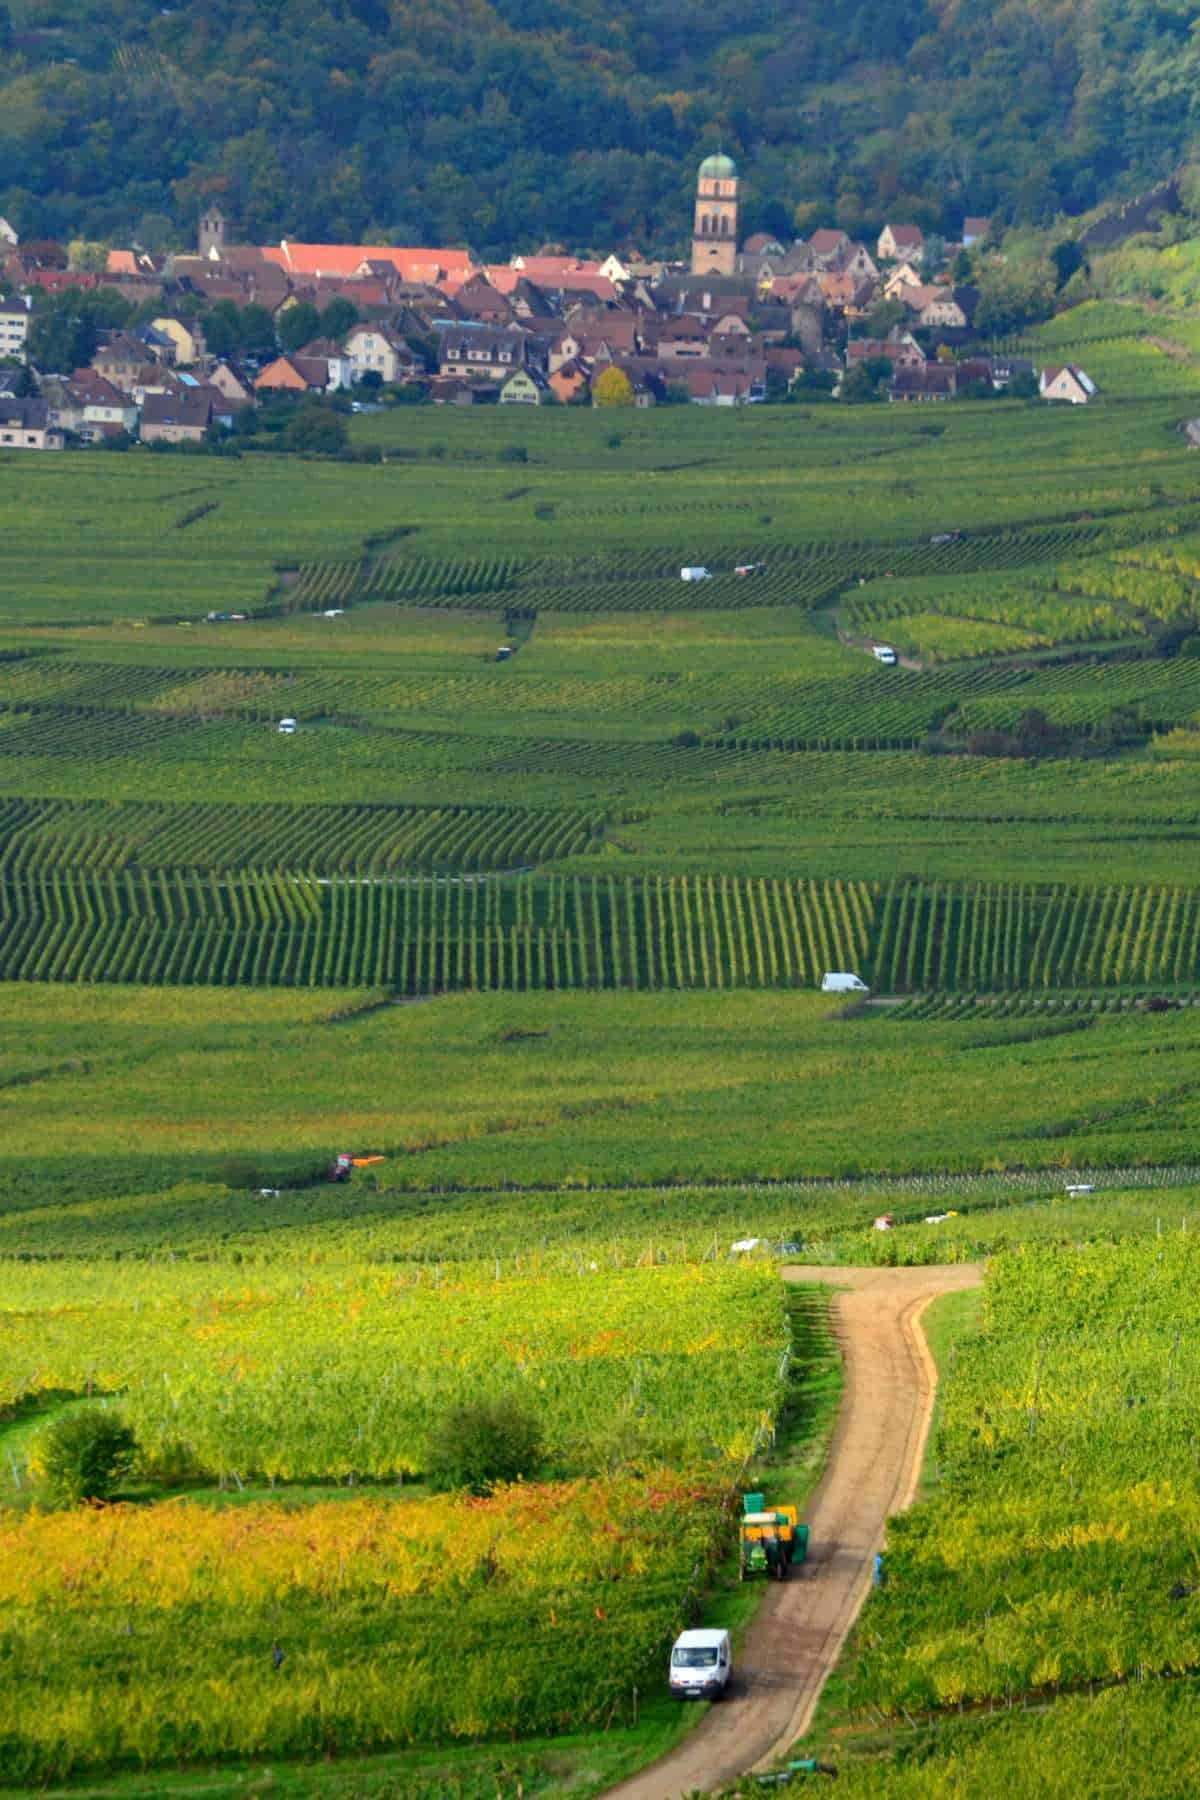 farmland and vineyards along the Alsace wine route, with a village in the background.